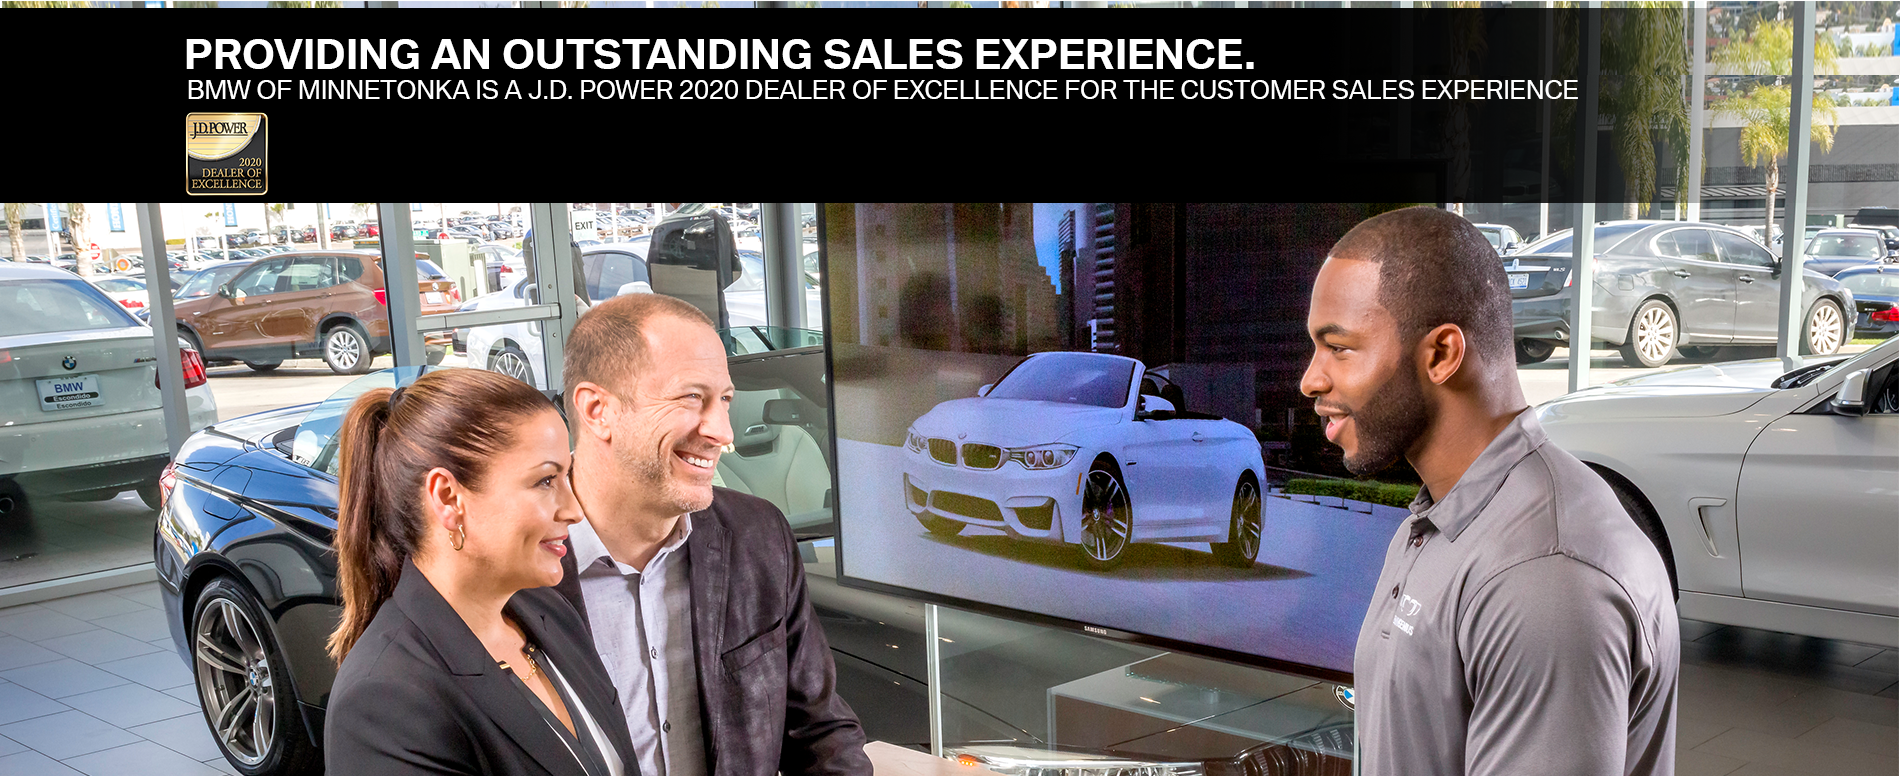 Providing an Outstanding Sales Experience. BMW of Minnetonka is a J.D Power 2020 Dealer of Excellence For The Customer Sales Experience.